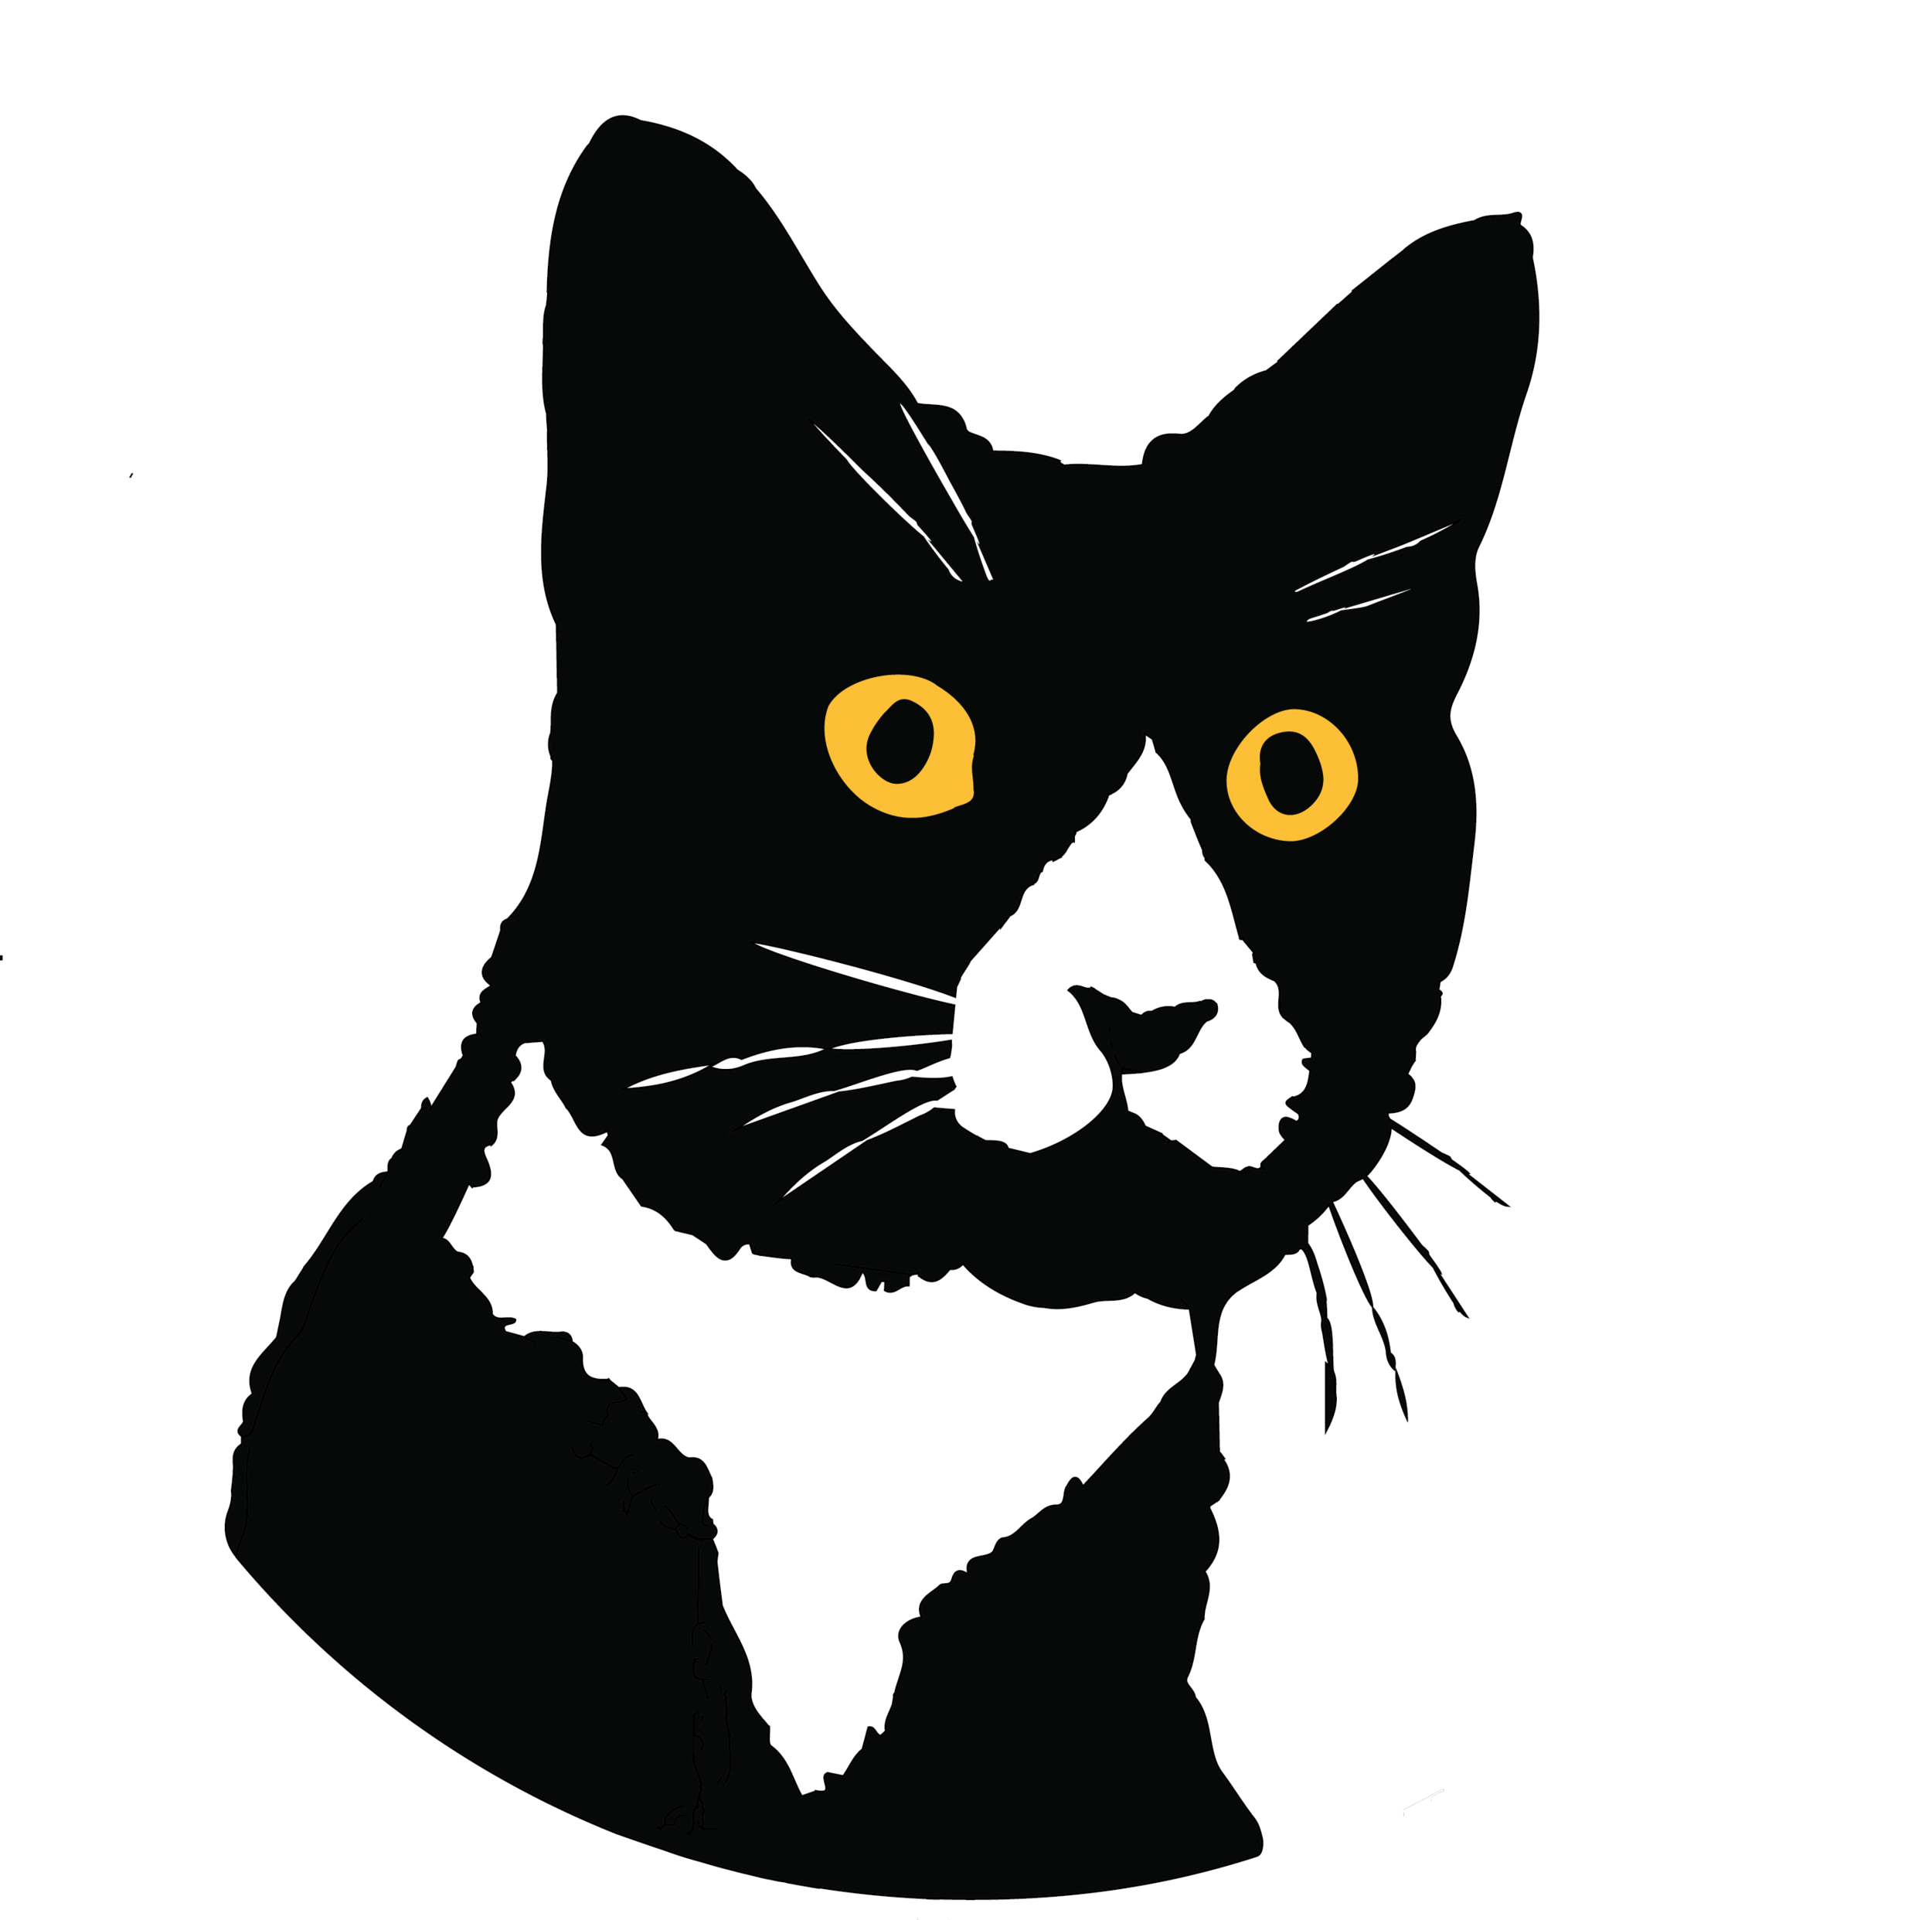 full-color-cat-logo-no-text-on-circle.png